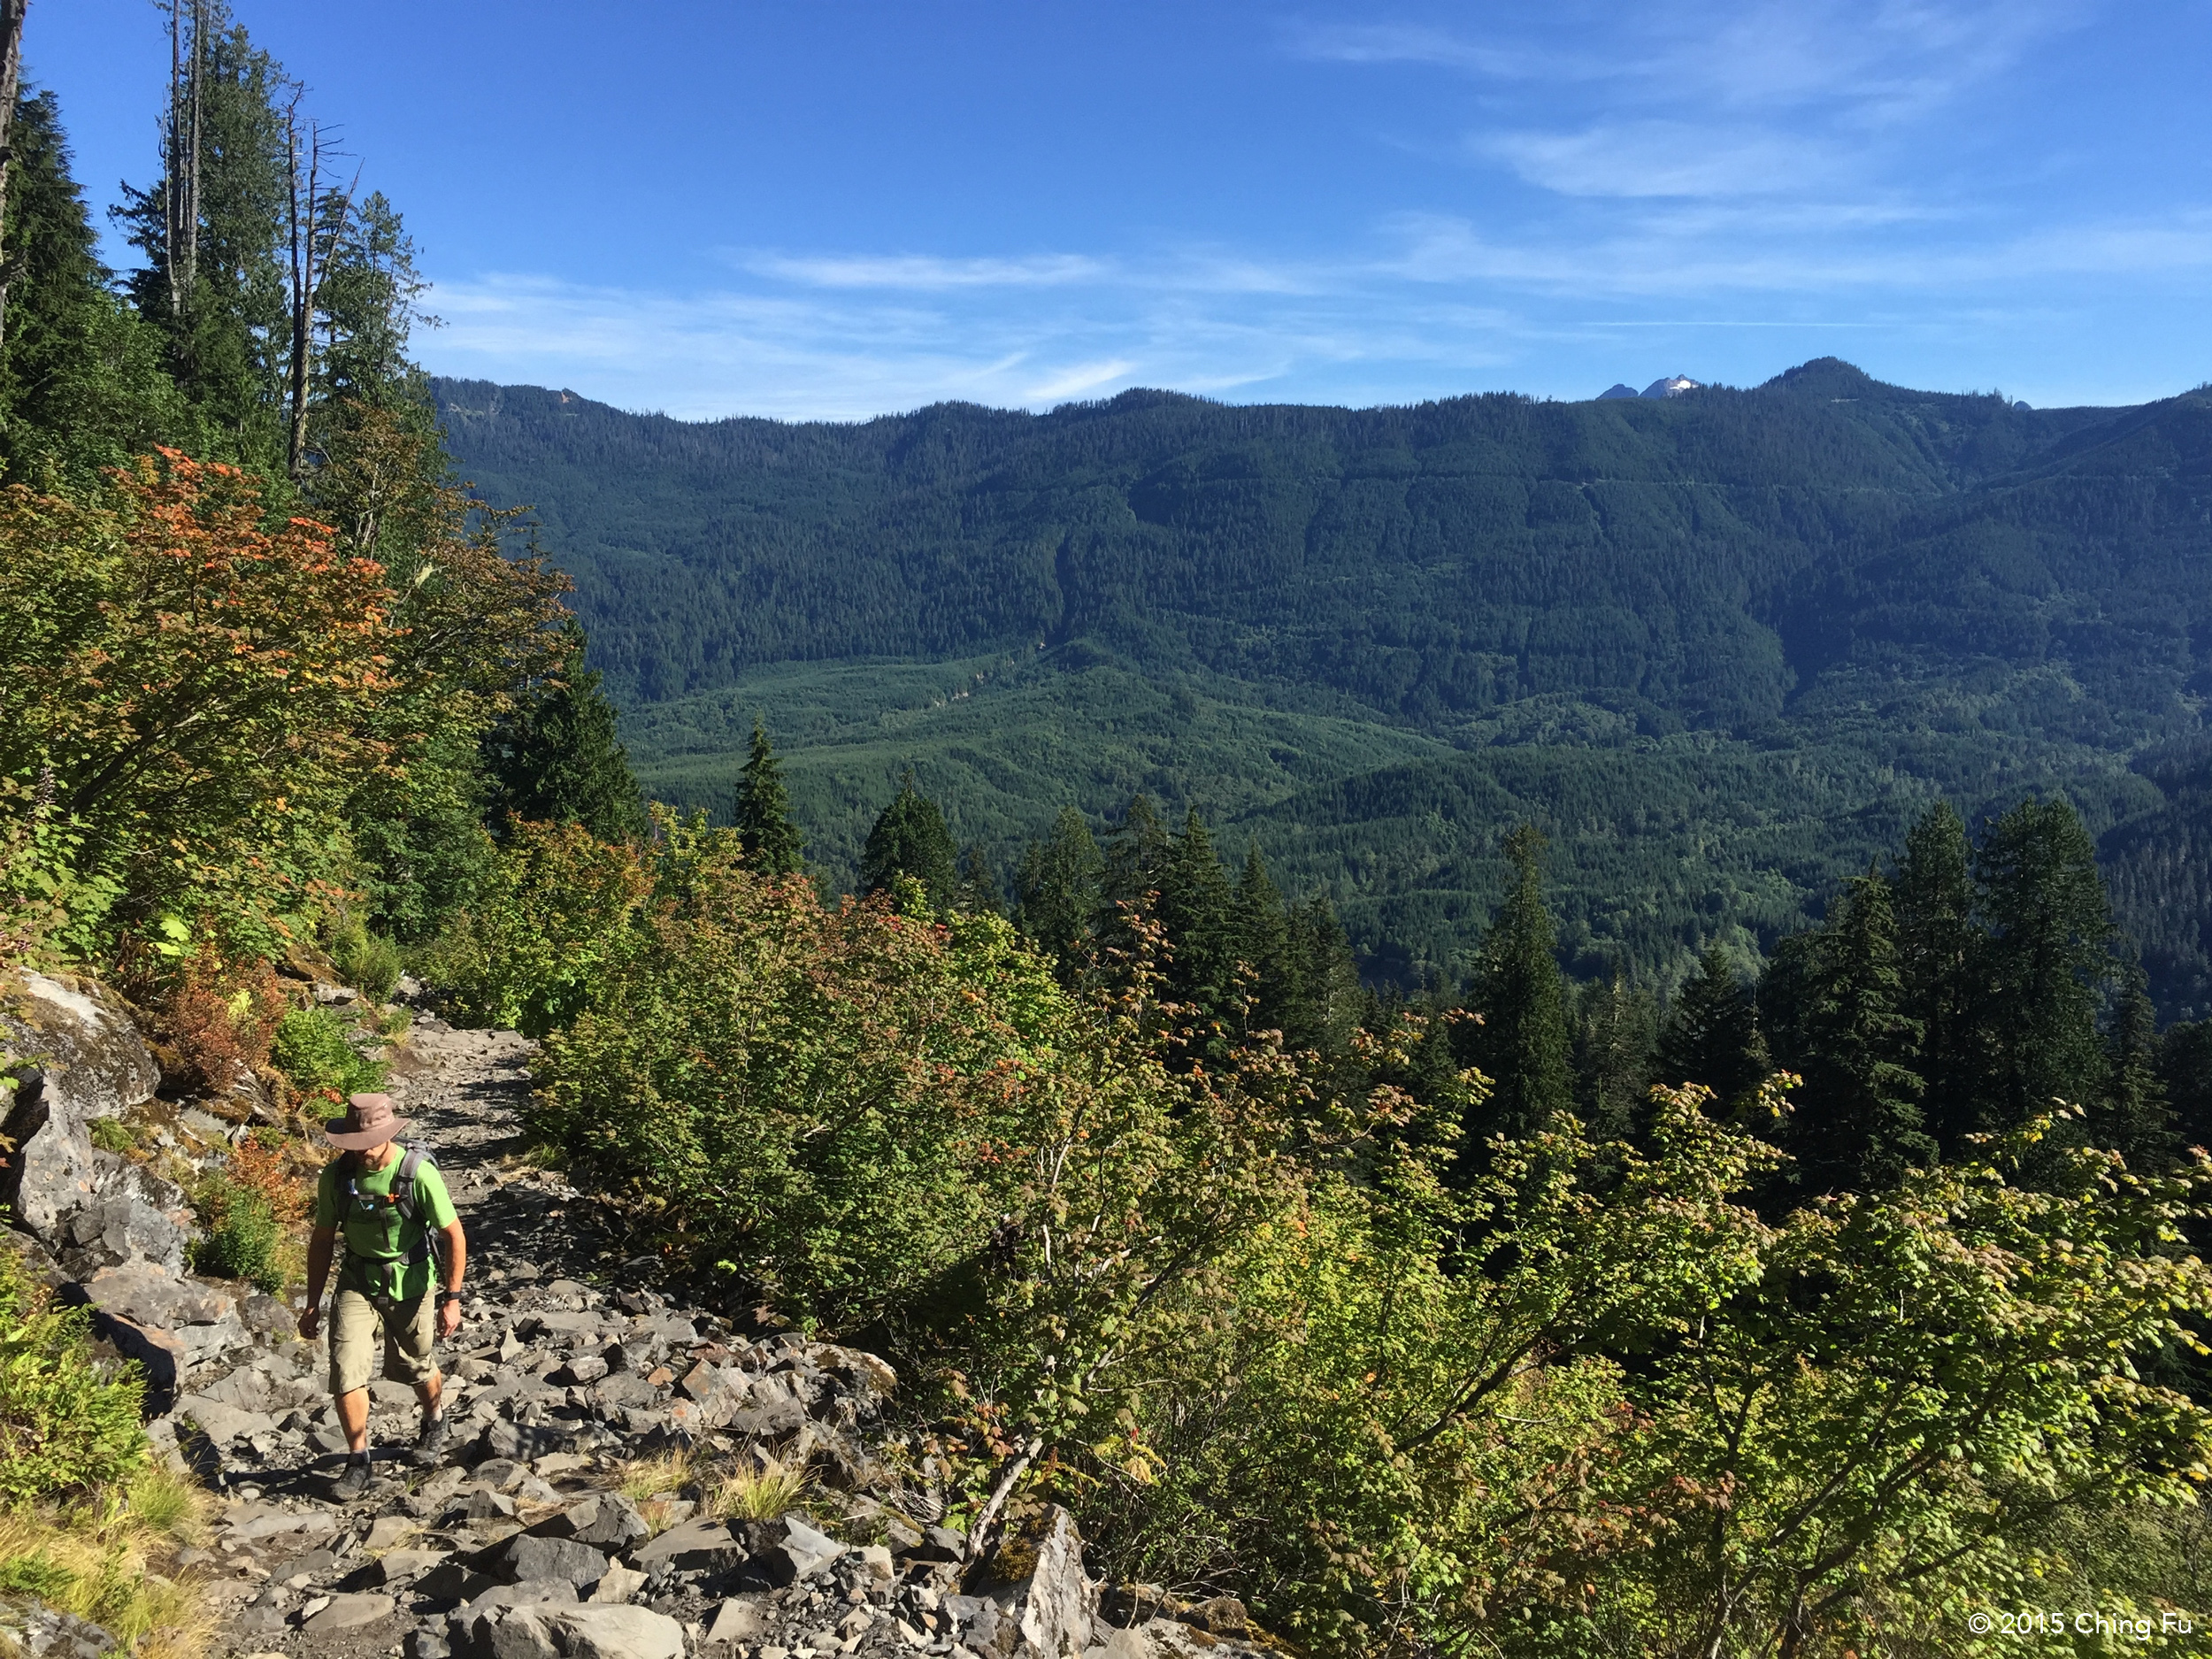 Hiking up the last talus portion of the trail.